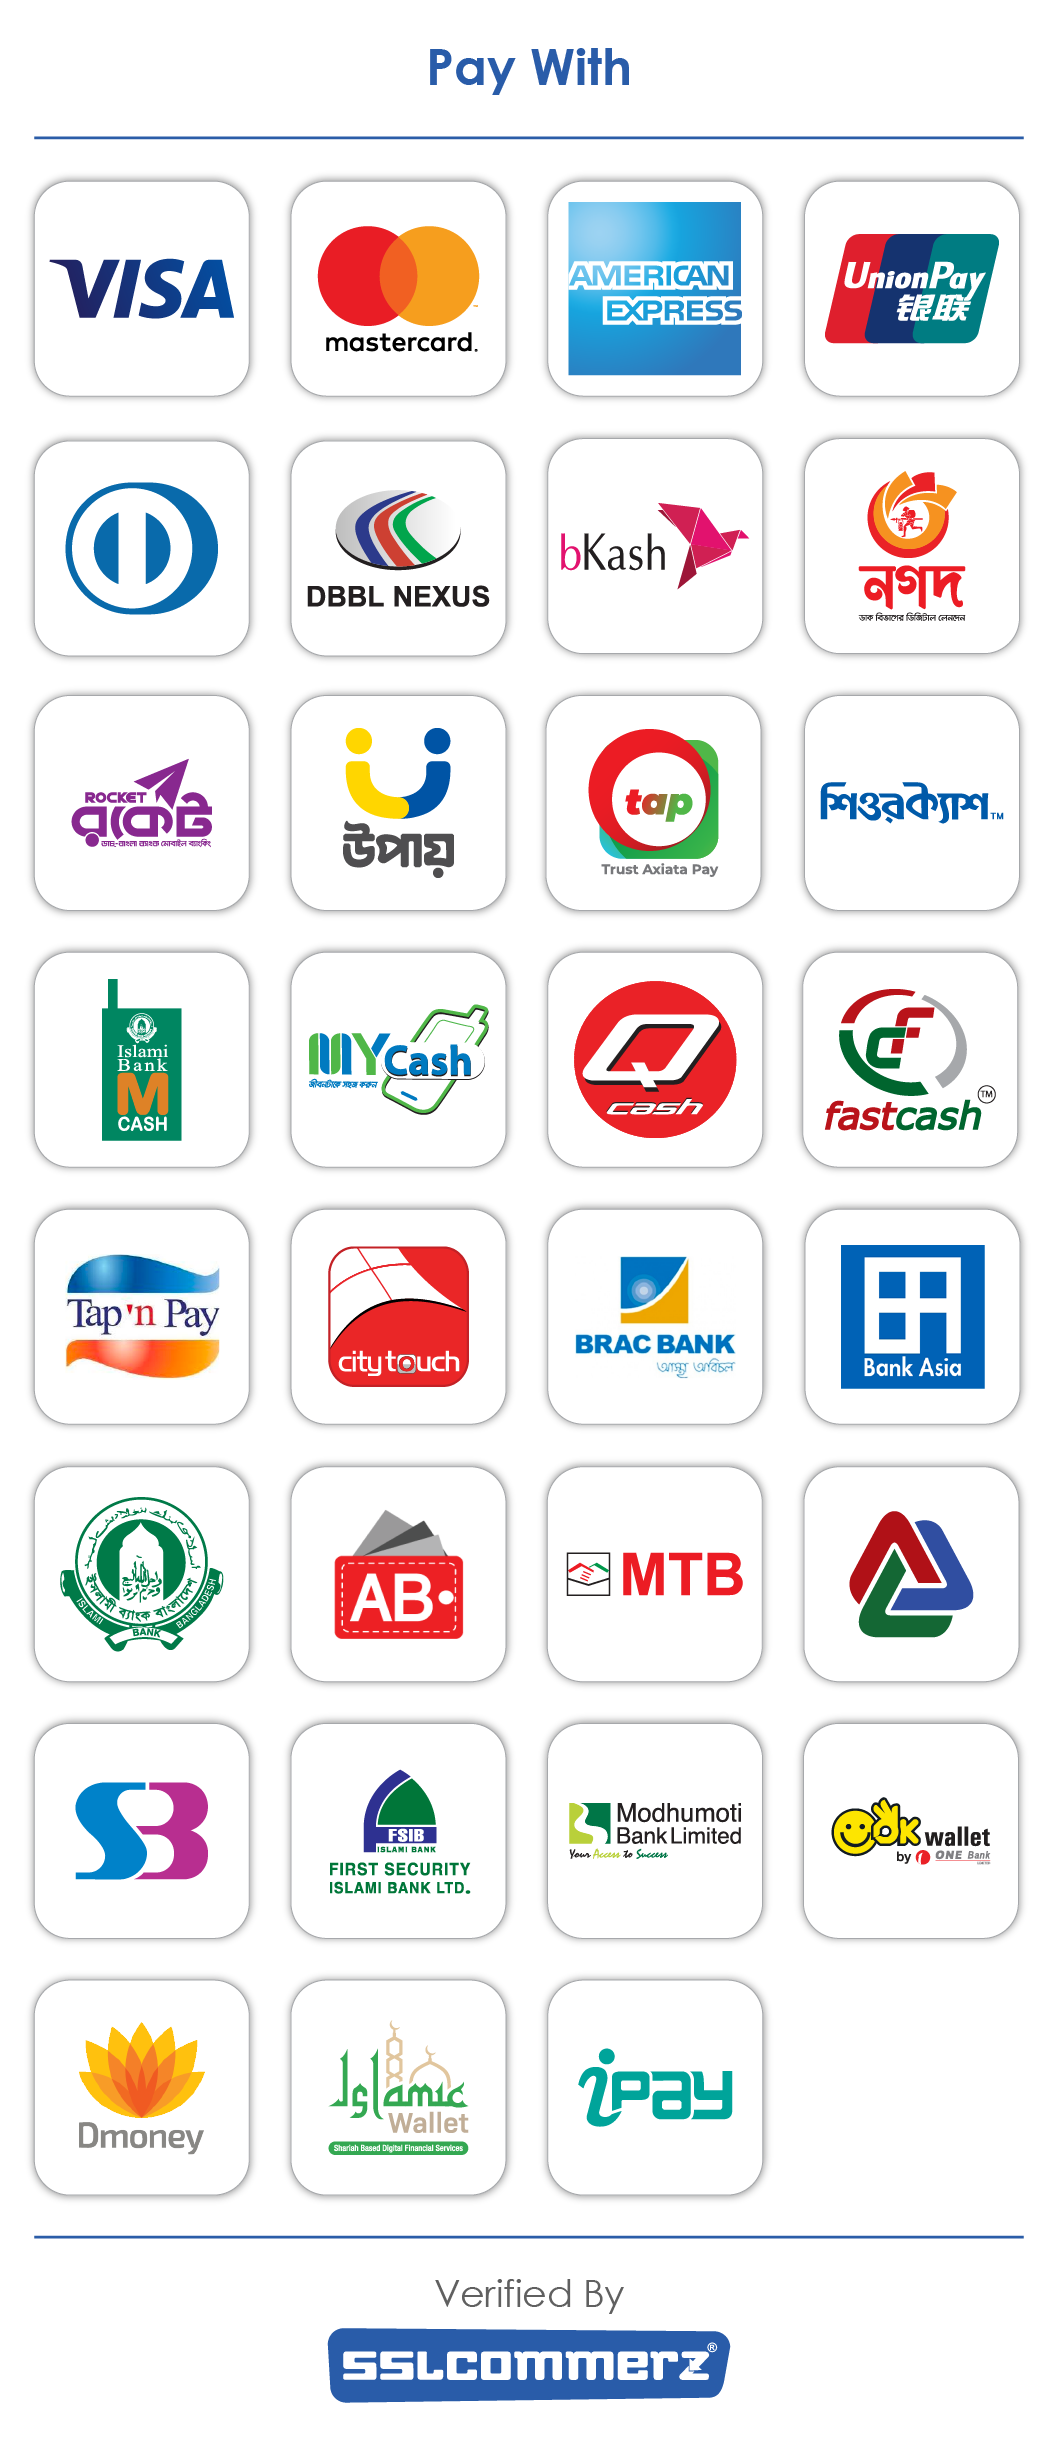 SSLCOMMERZ payment channel icons